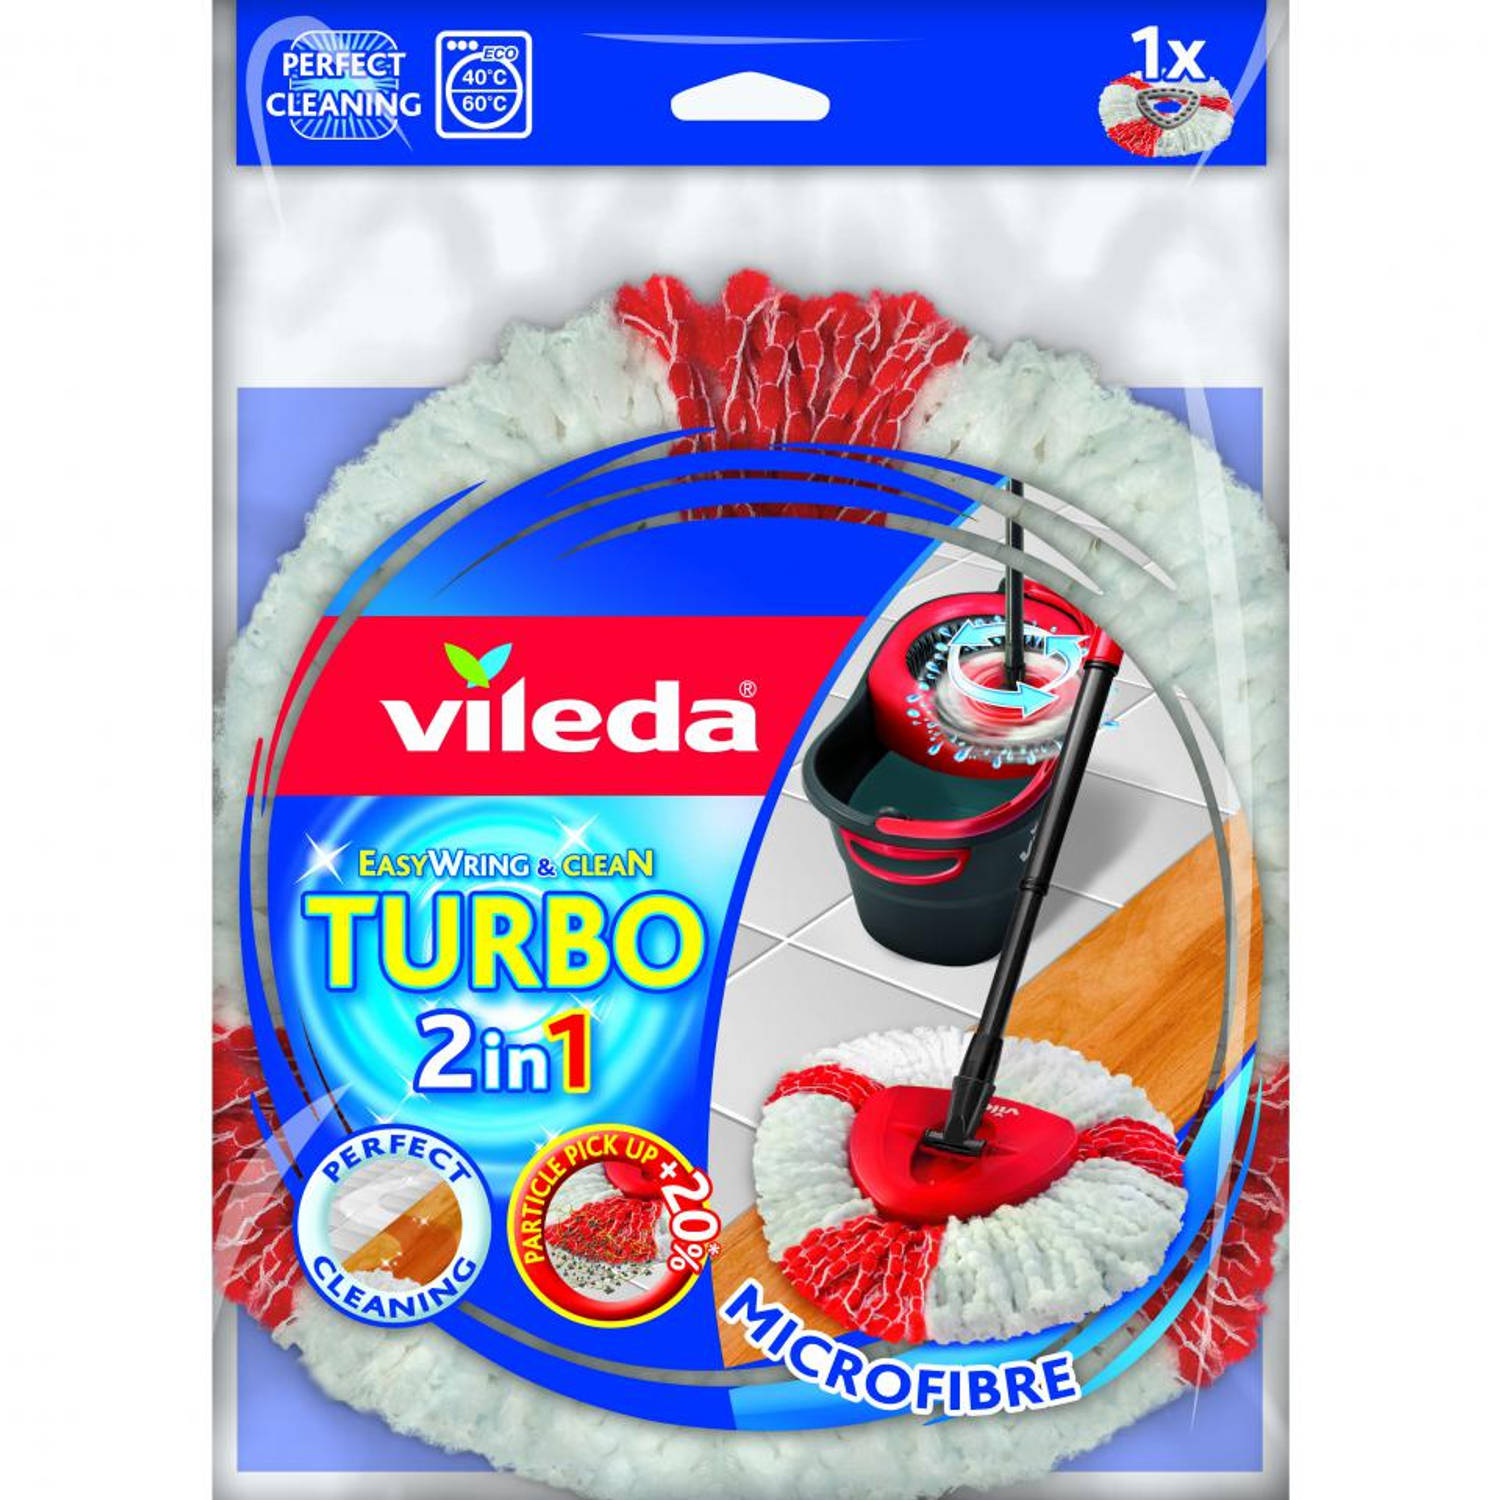 Vileda Easy Wring & Clean TURBO vervanging